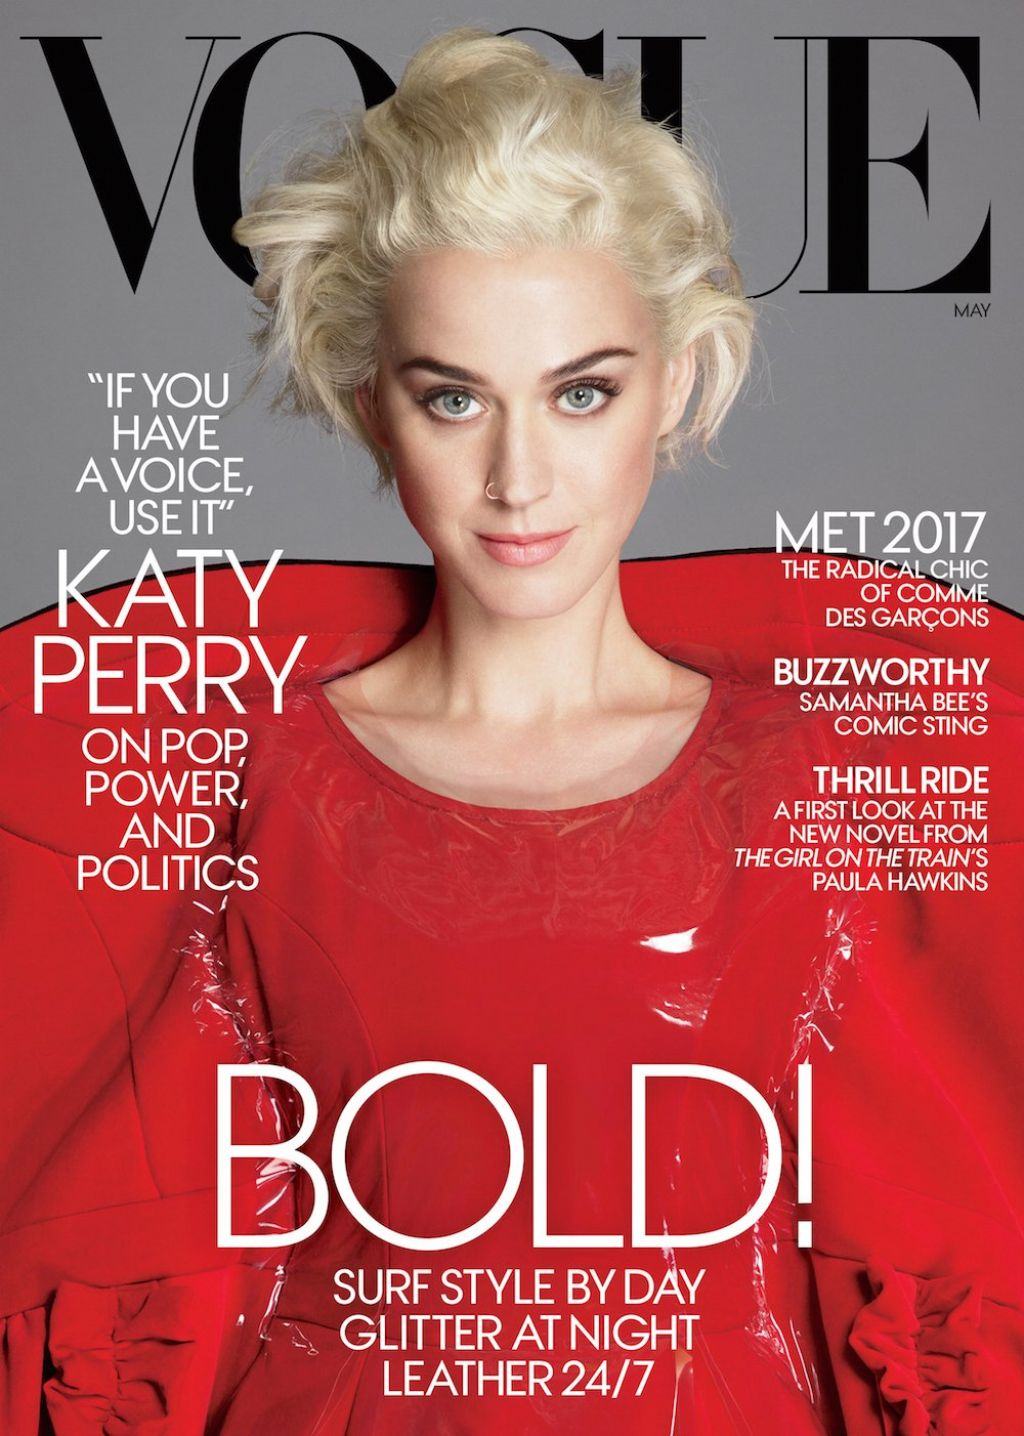 Vogue Magazine Uk May 2015 Issue: Katy Perry -Vogue Magazine US May 2017 Cover And Photos